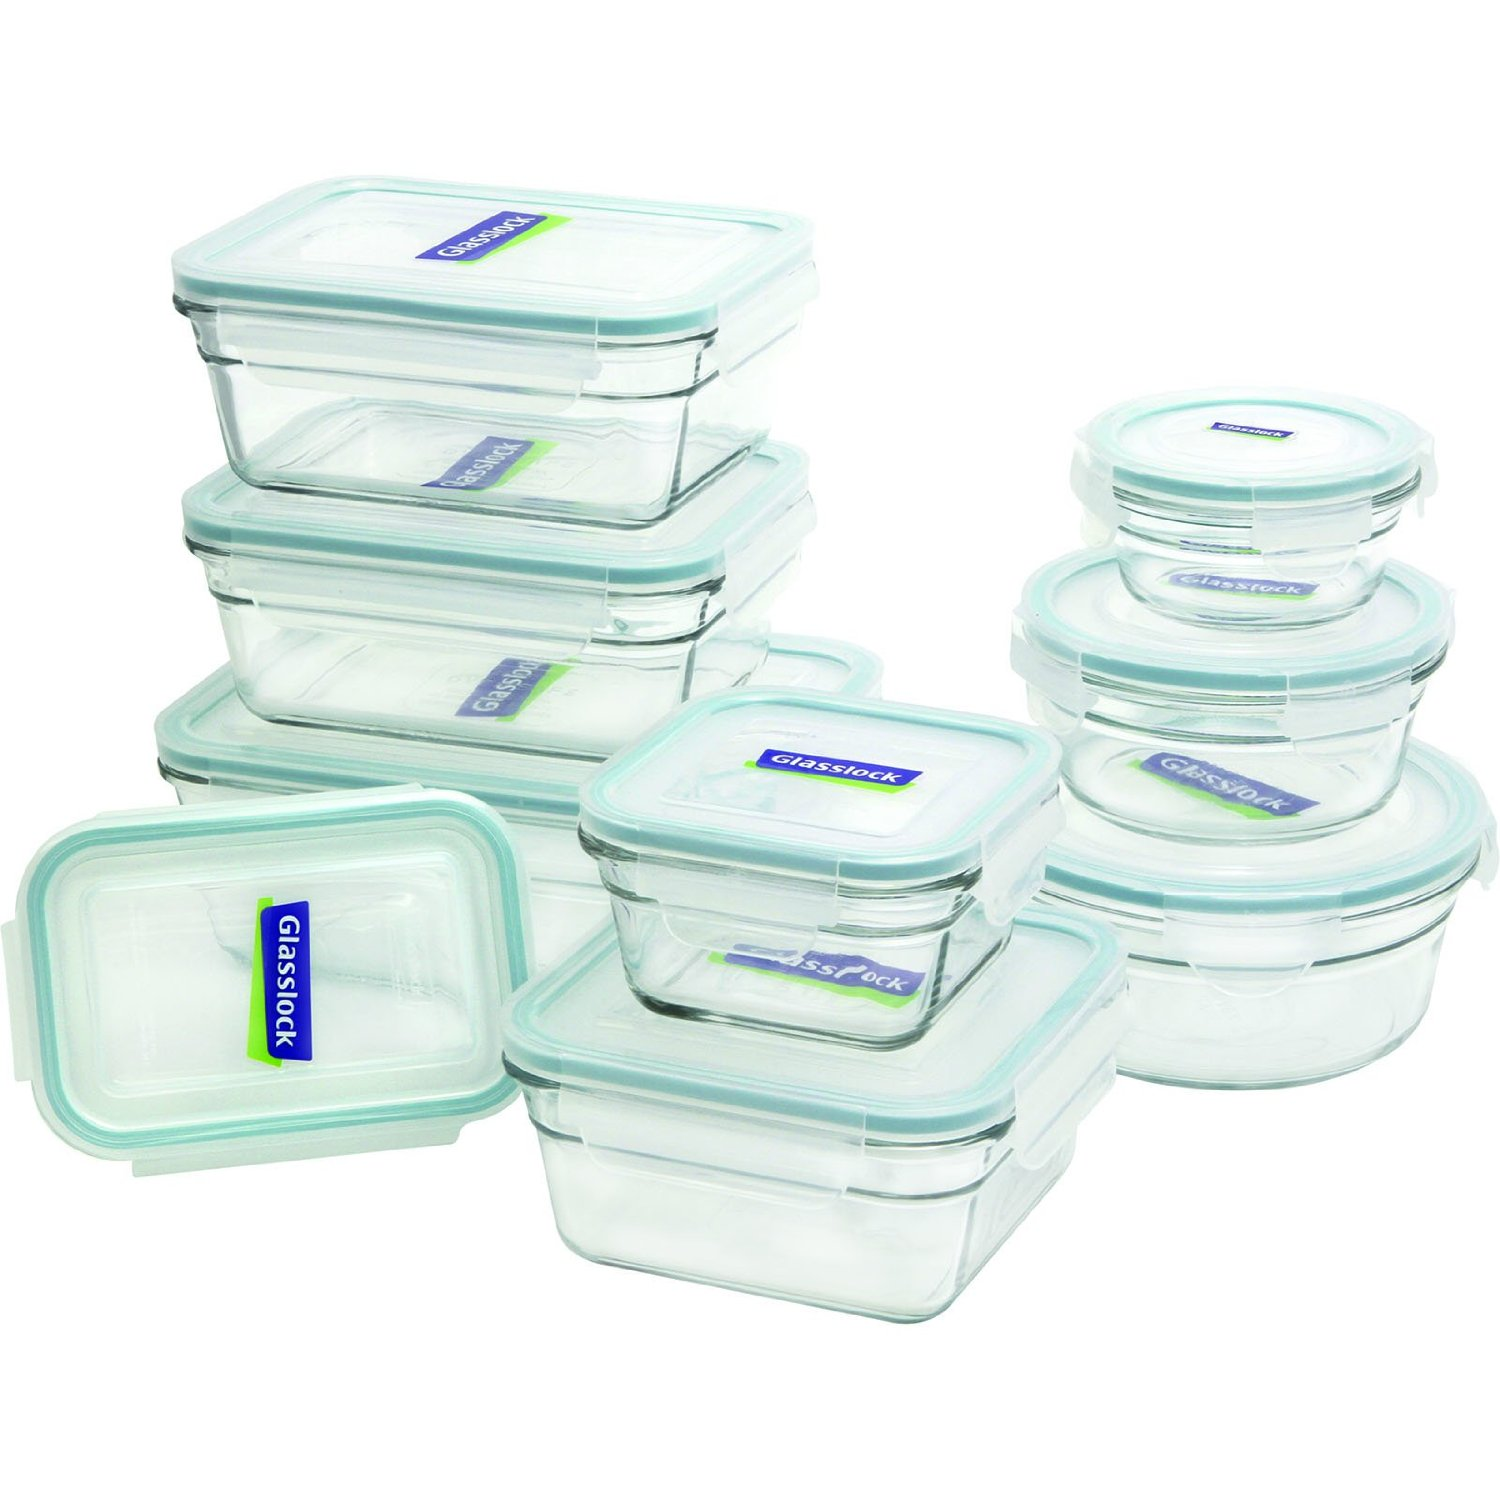 Best Food Storage Containers Reviews Compare NOW